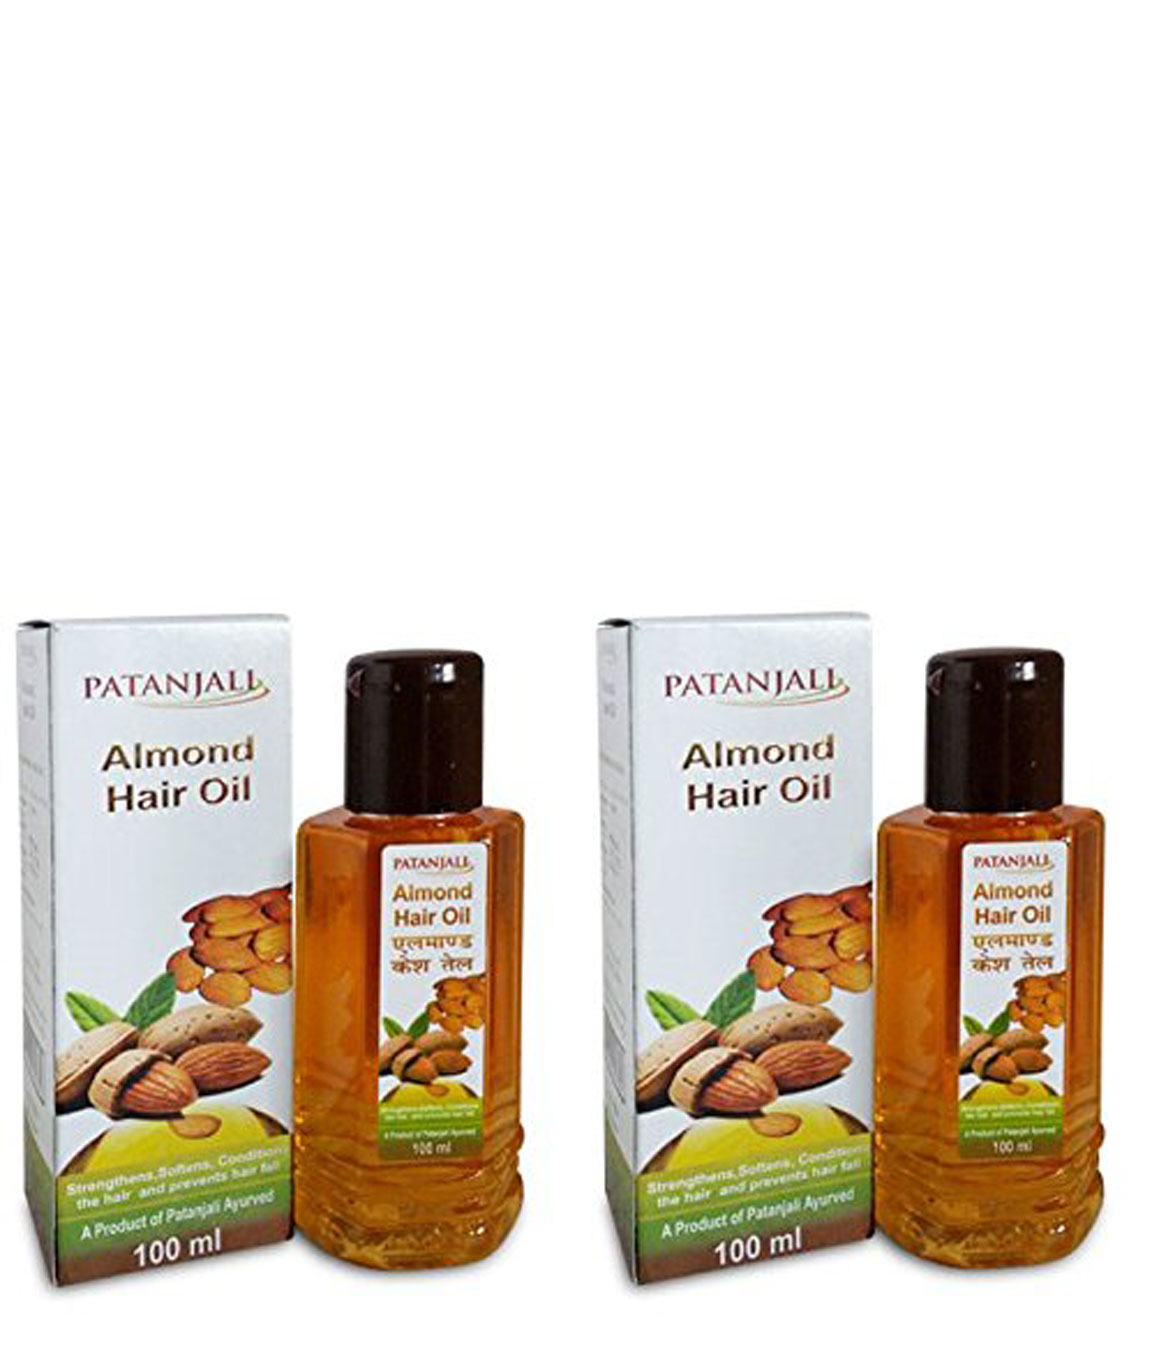 Patanjali Almond Hair Oil, 100ml (Pack of 2)